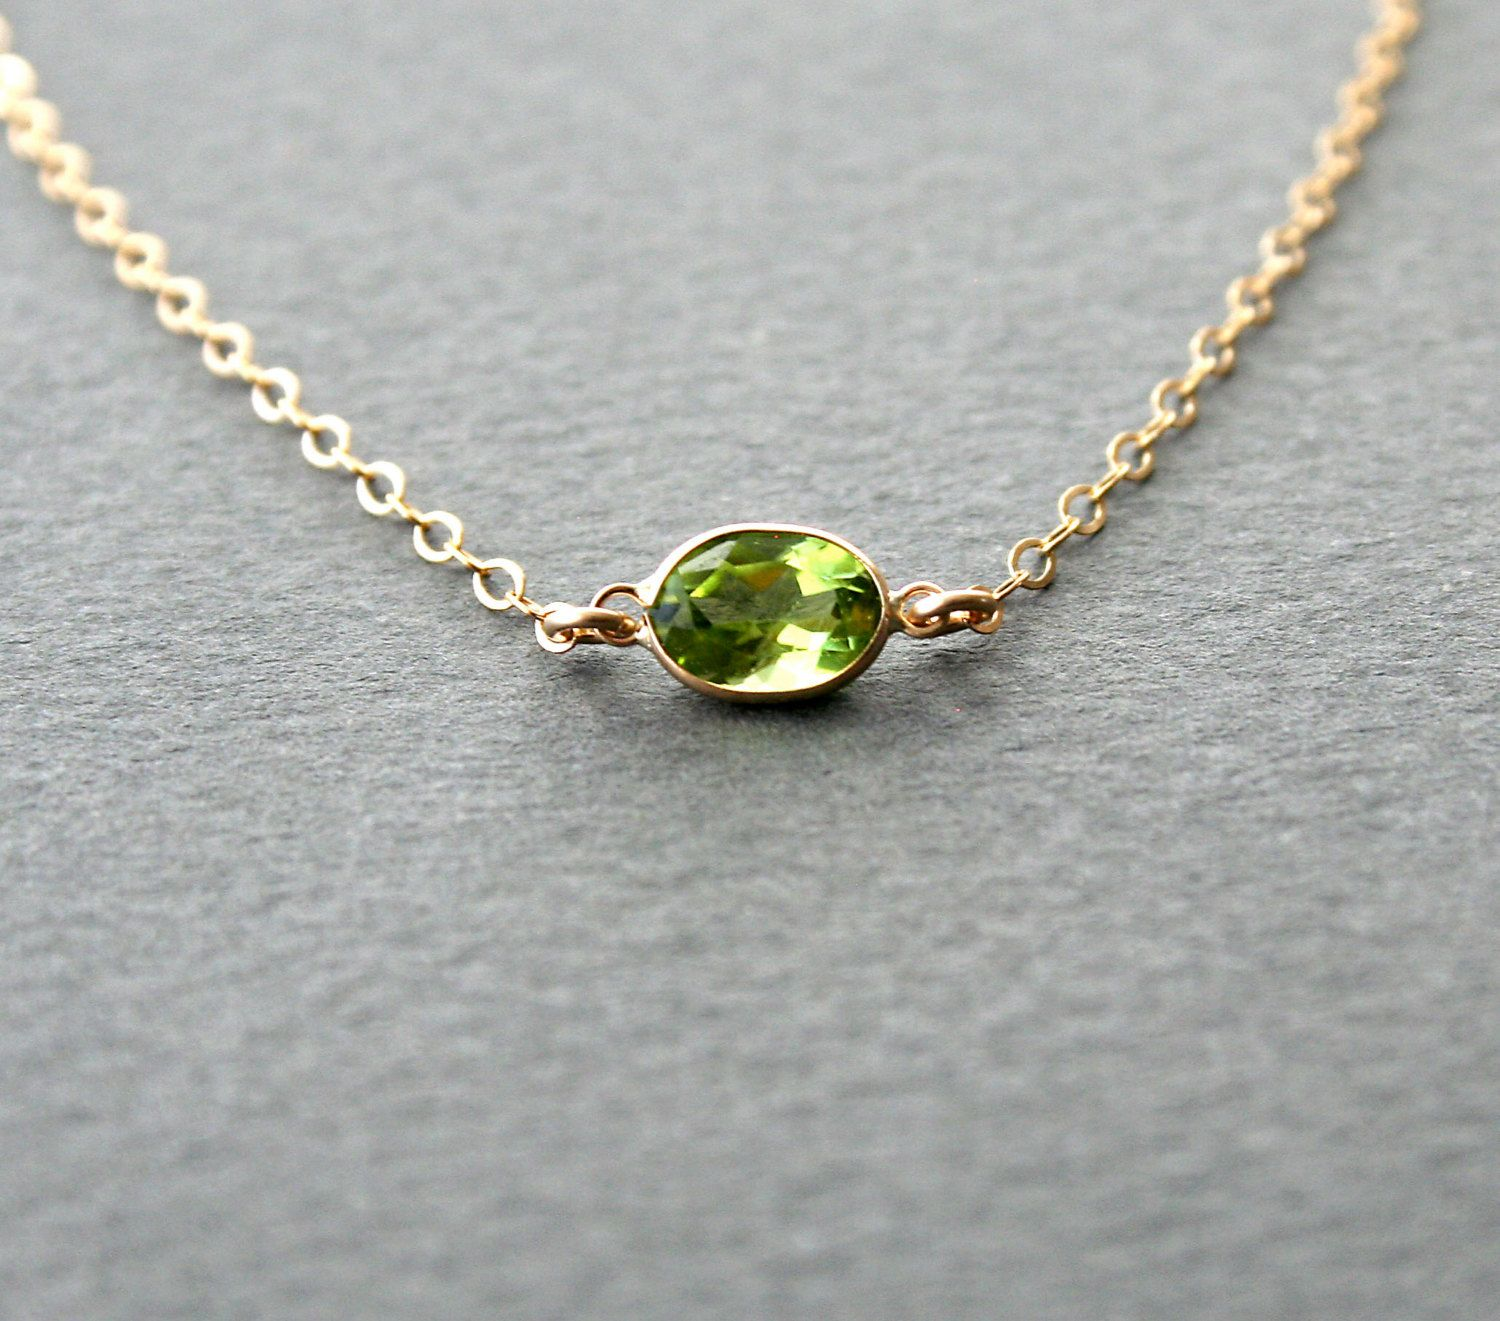 color august toe pmr ring necklace silver sterling az peridot crystal jewelry bling birthstone